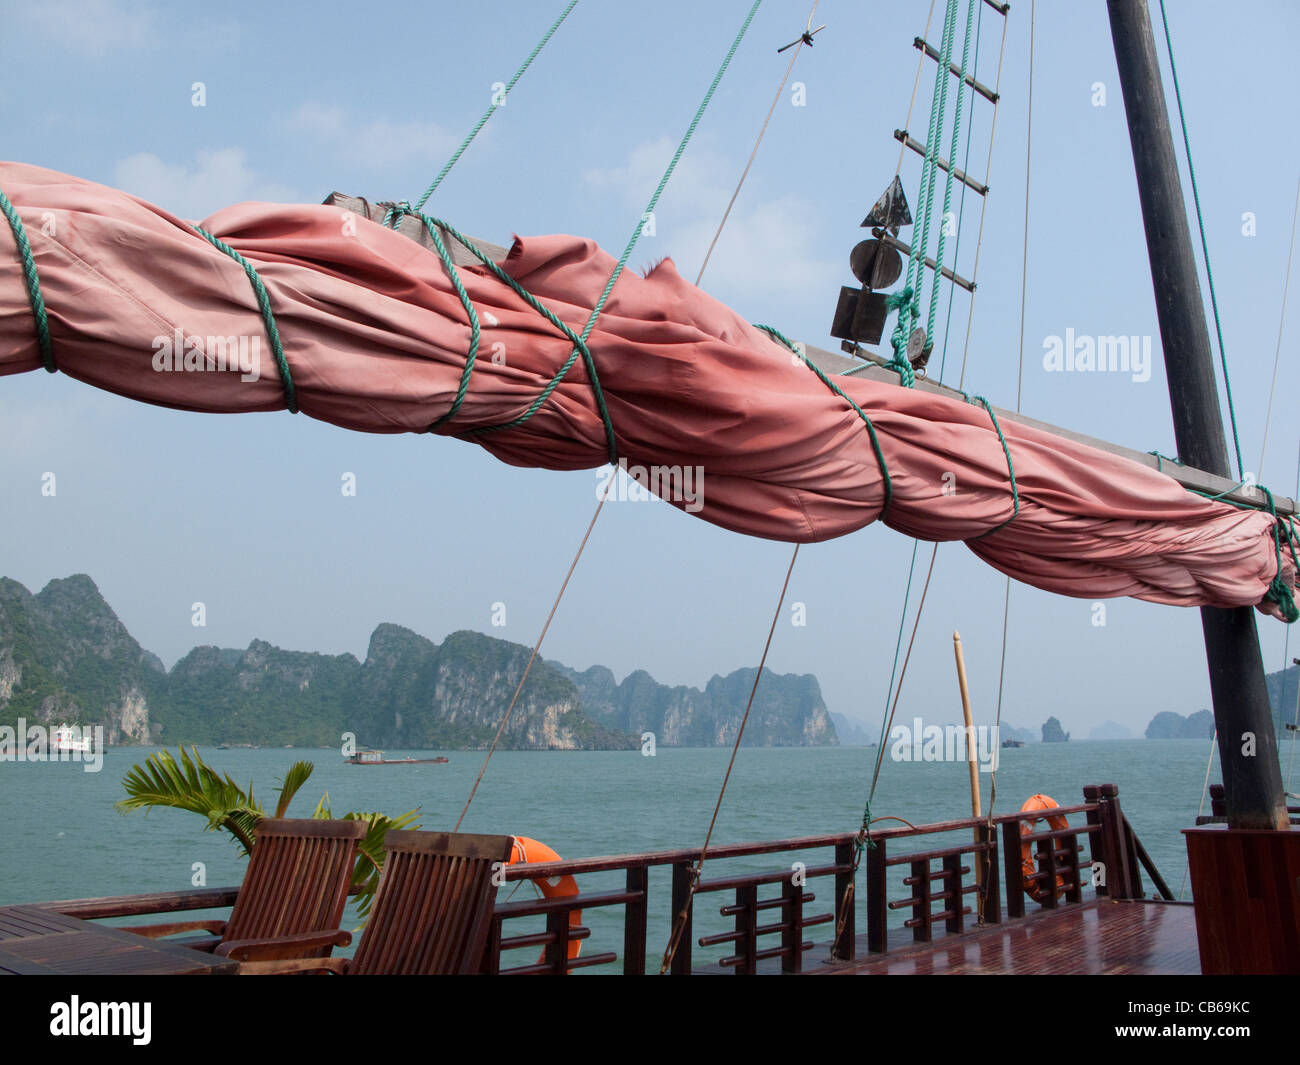 On board a Junk in the South China Sea, Halong Bay, Vietnam - Stock Image